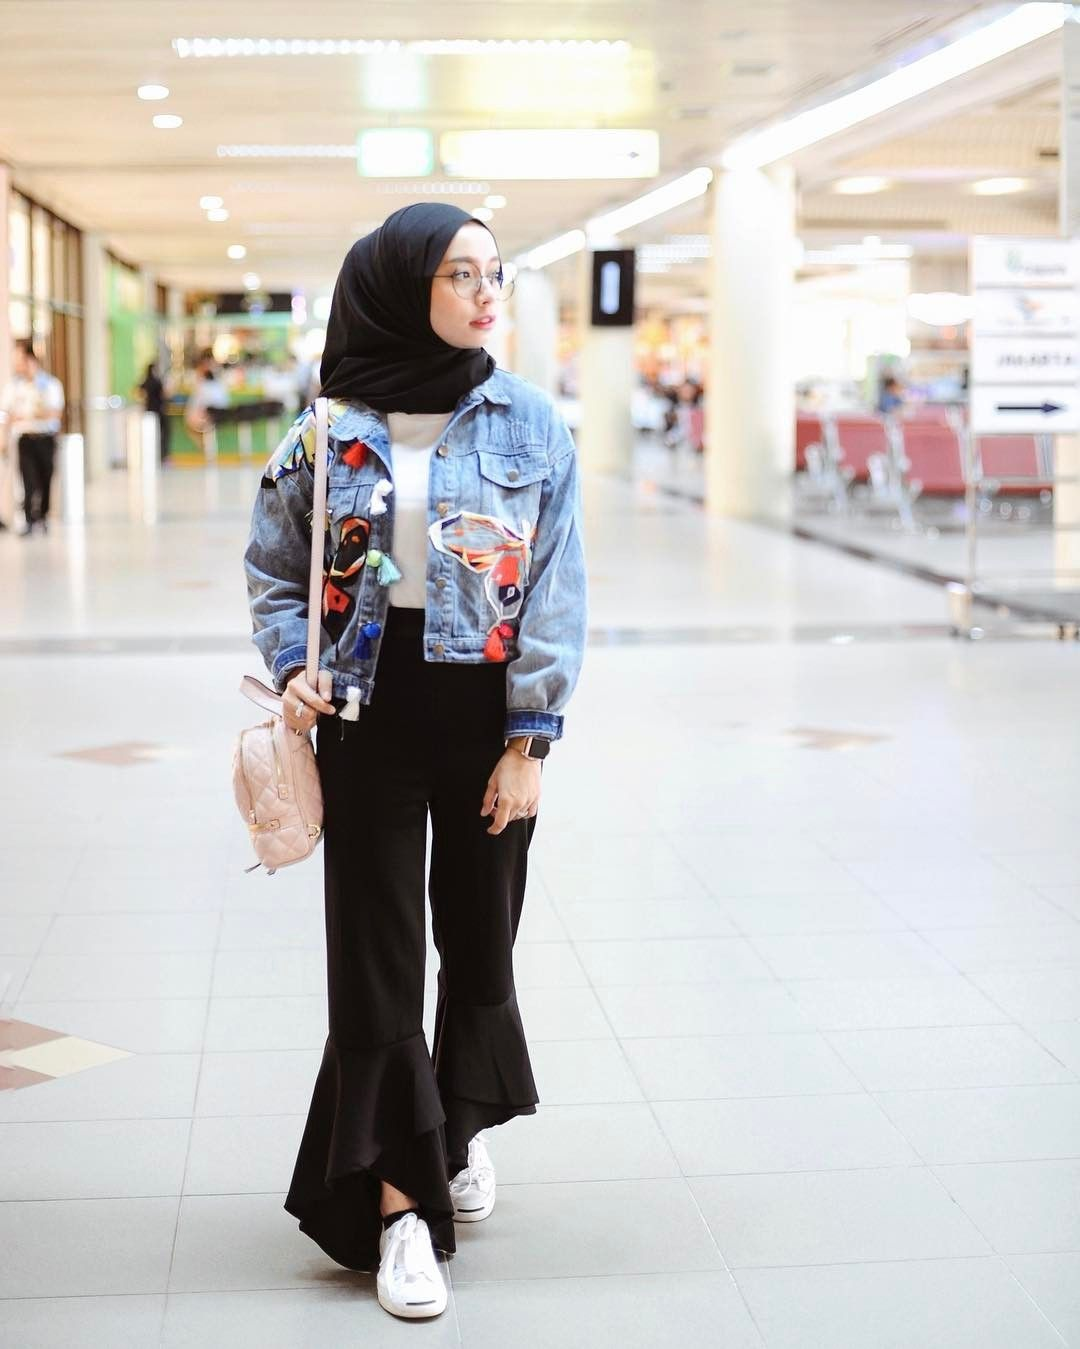 Pin by Shay Zee on Classy + Vogue Muslimah | Street hijab ...